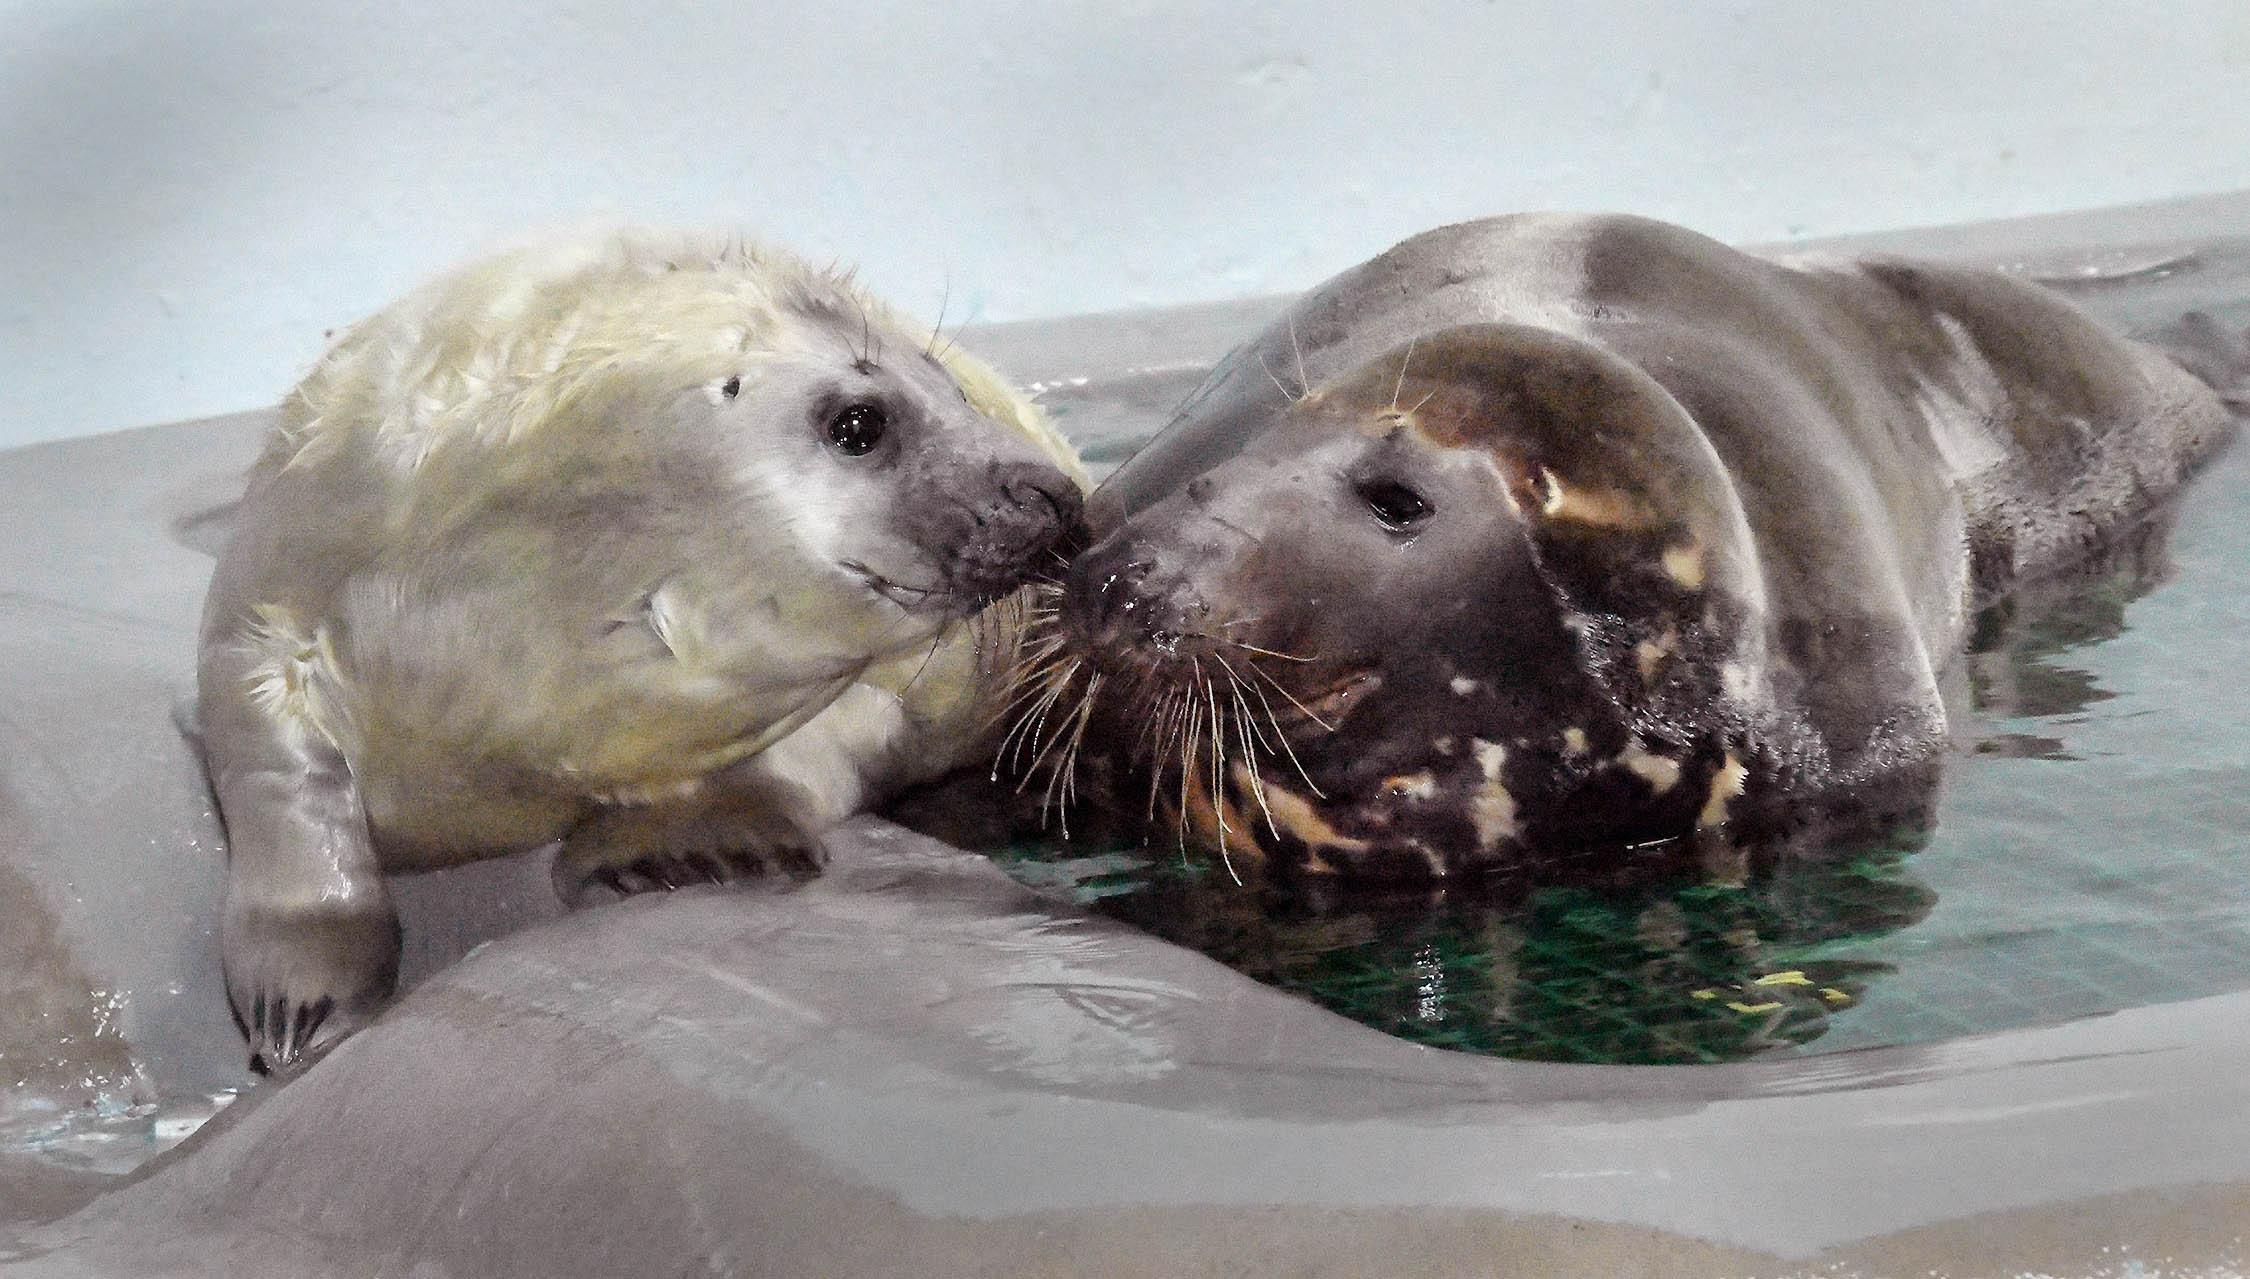 A male gray seal pup with his mother, 13-year-old Lily, at Brookfield Zoo. The pup was born on Dec. 26 and will remain behind the scenes until late February. (Jim Schulz / Chicago Zoological Society)